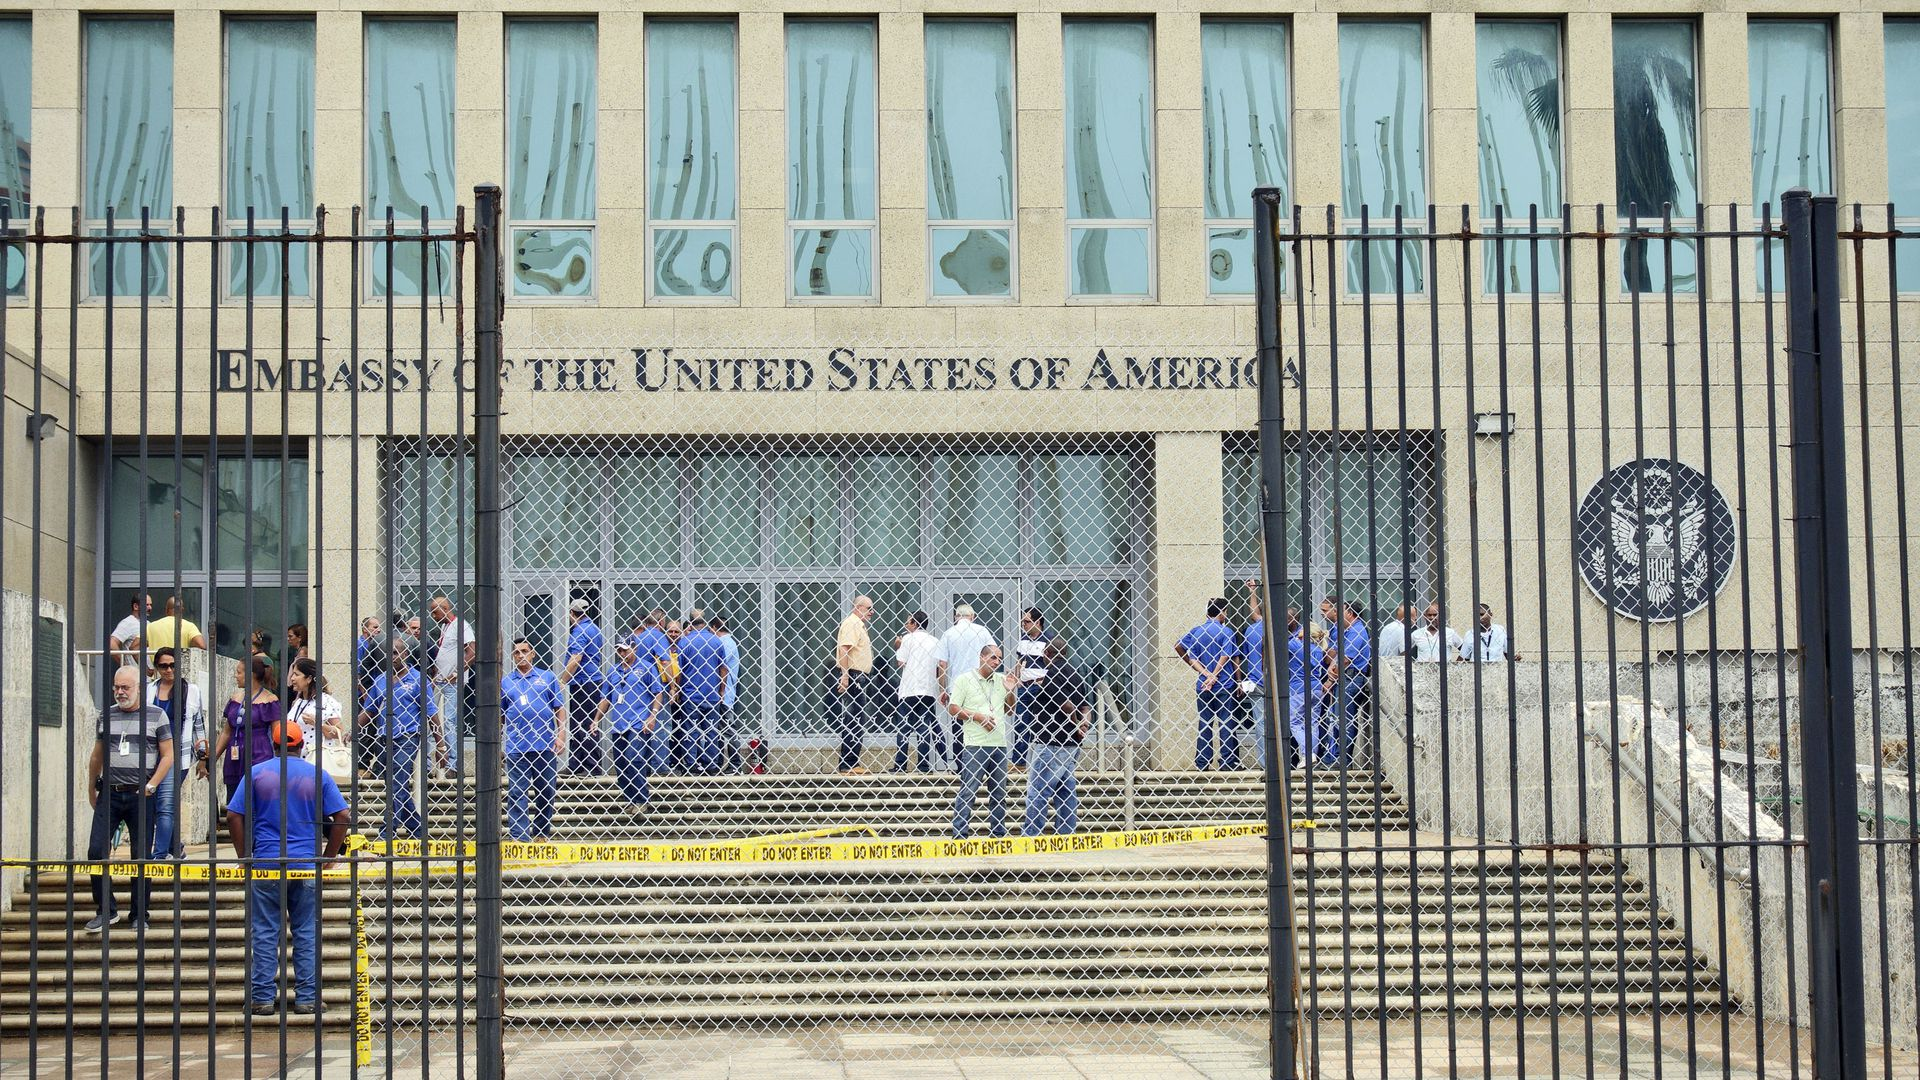 Personnel gather outside the U.S. Embassy in Cuba in 2017 in the wake of mysterious health problems.